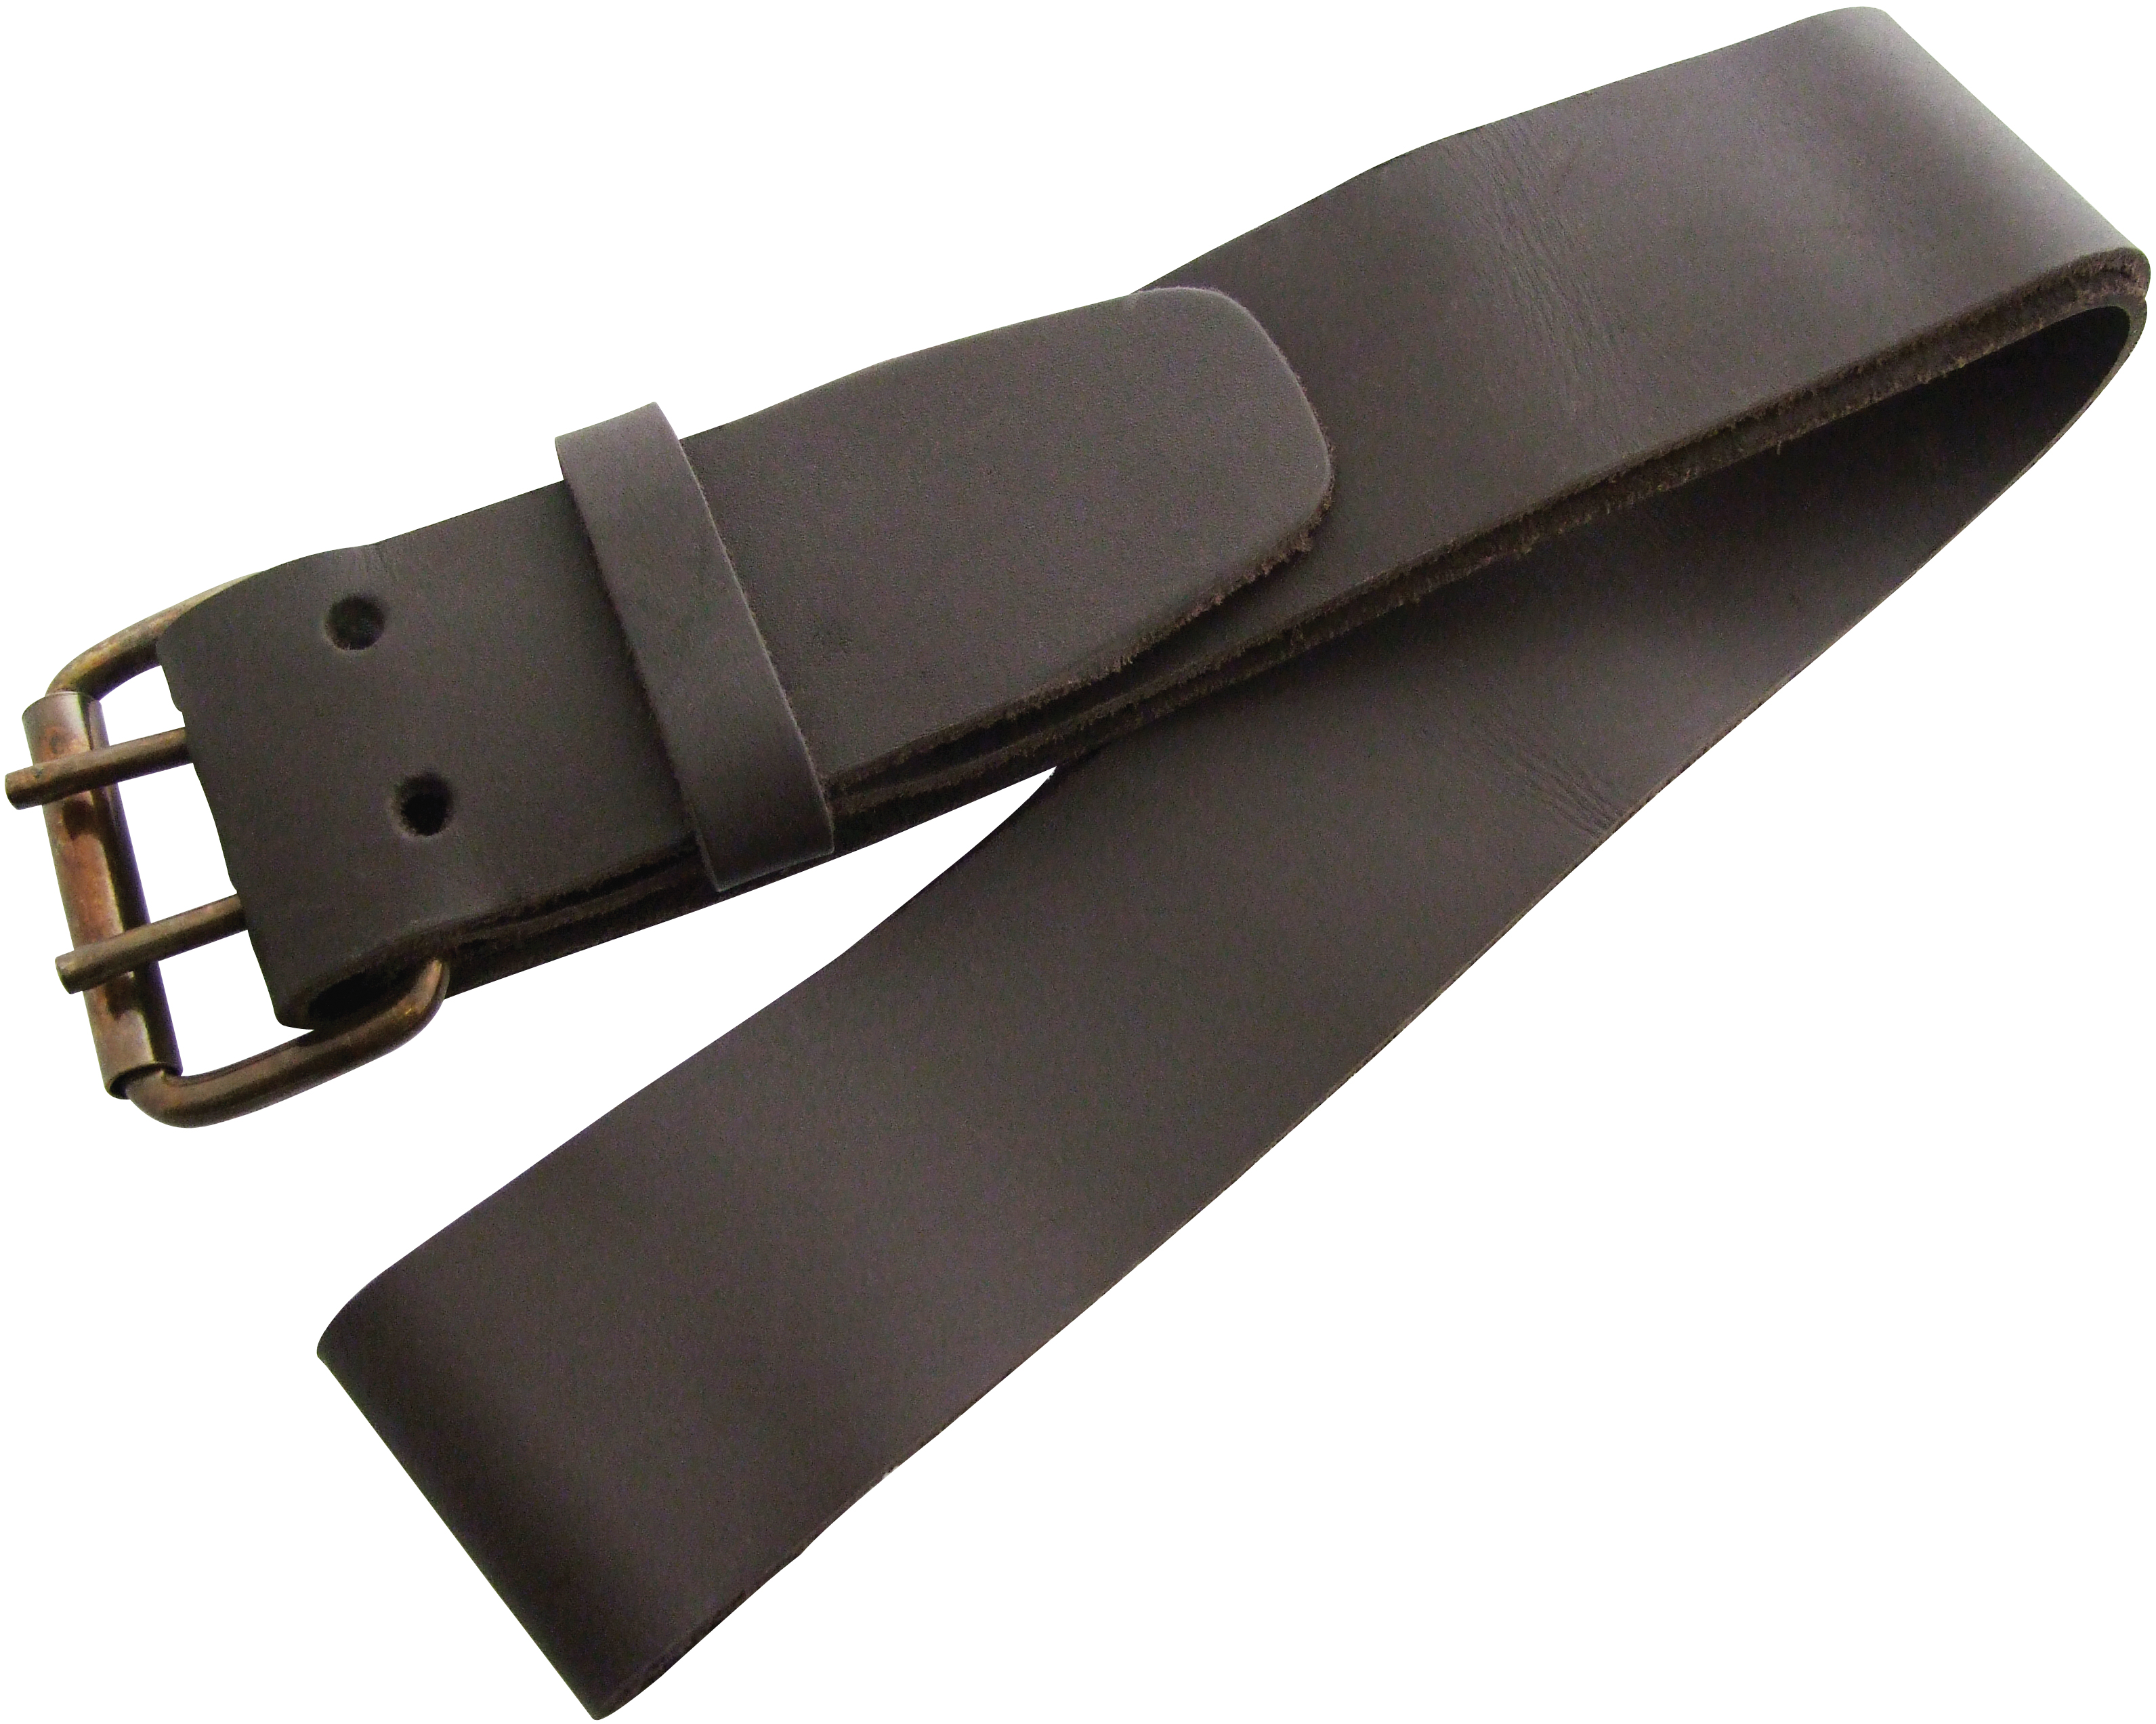 2 inch leather work belt 3m sanding respirator